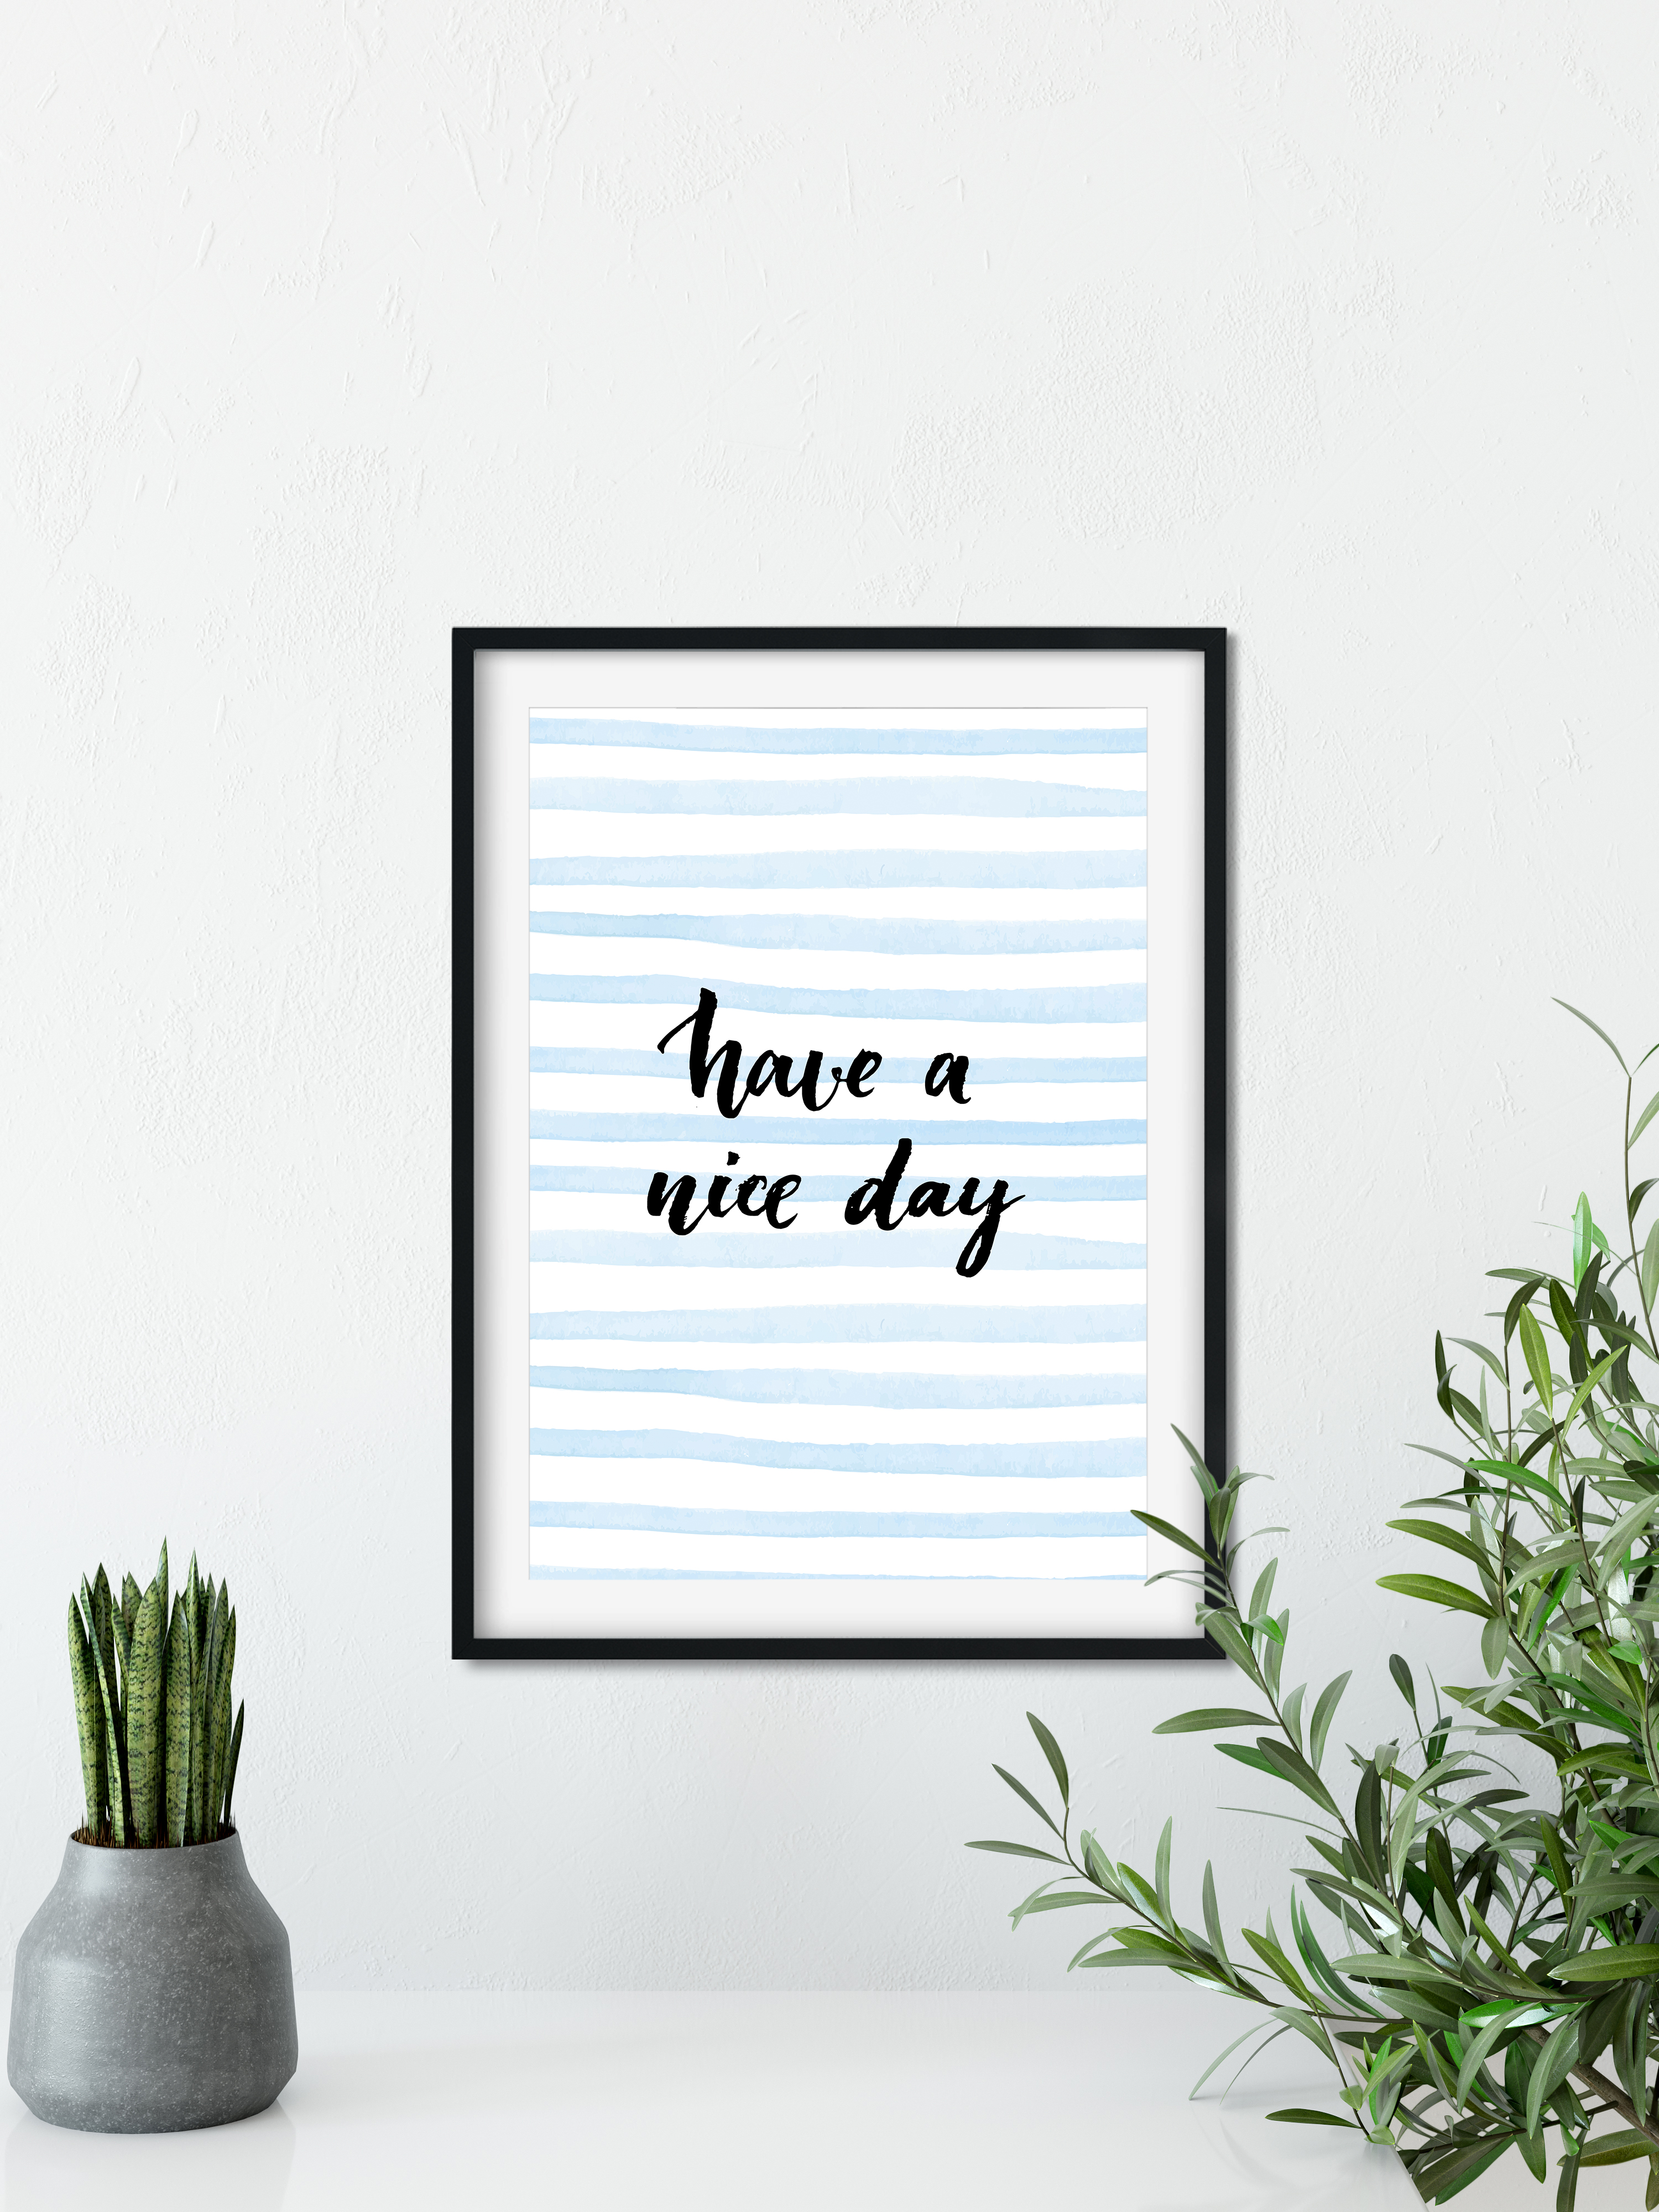 Motivational inspirational quote Poster Picture Art Have a nice day